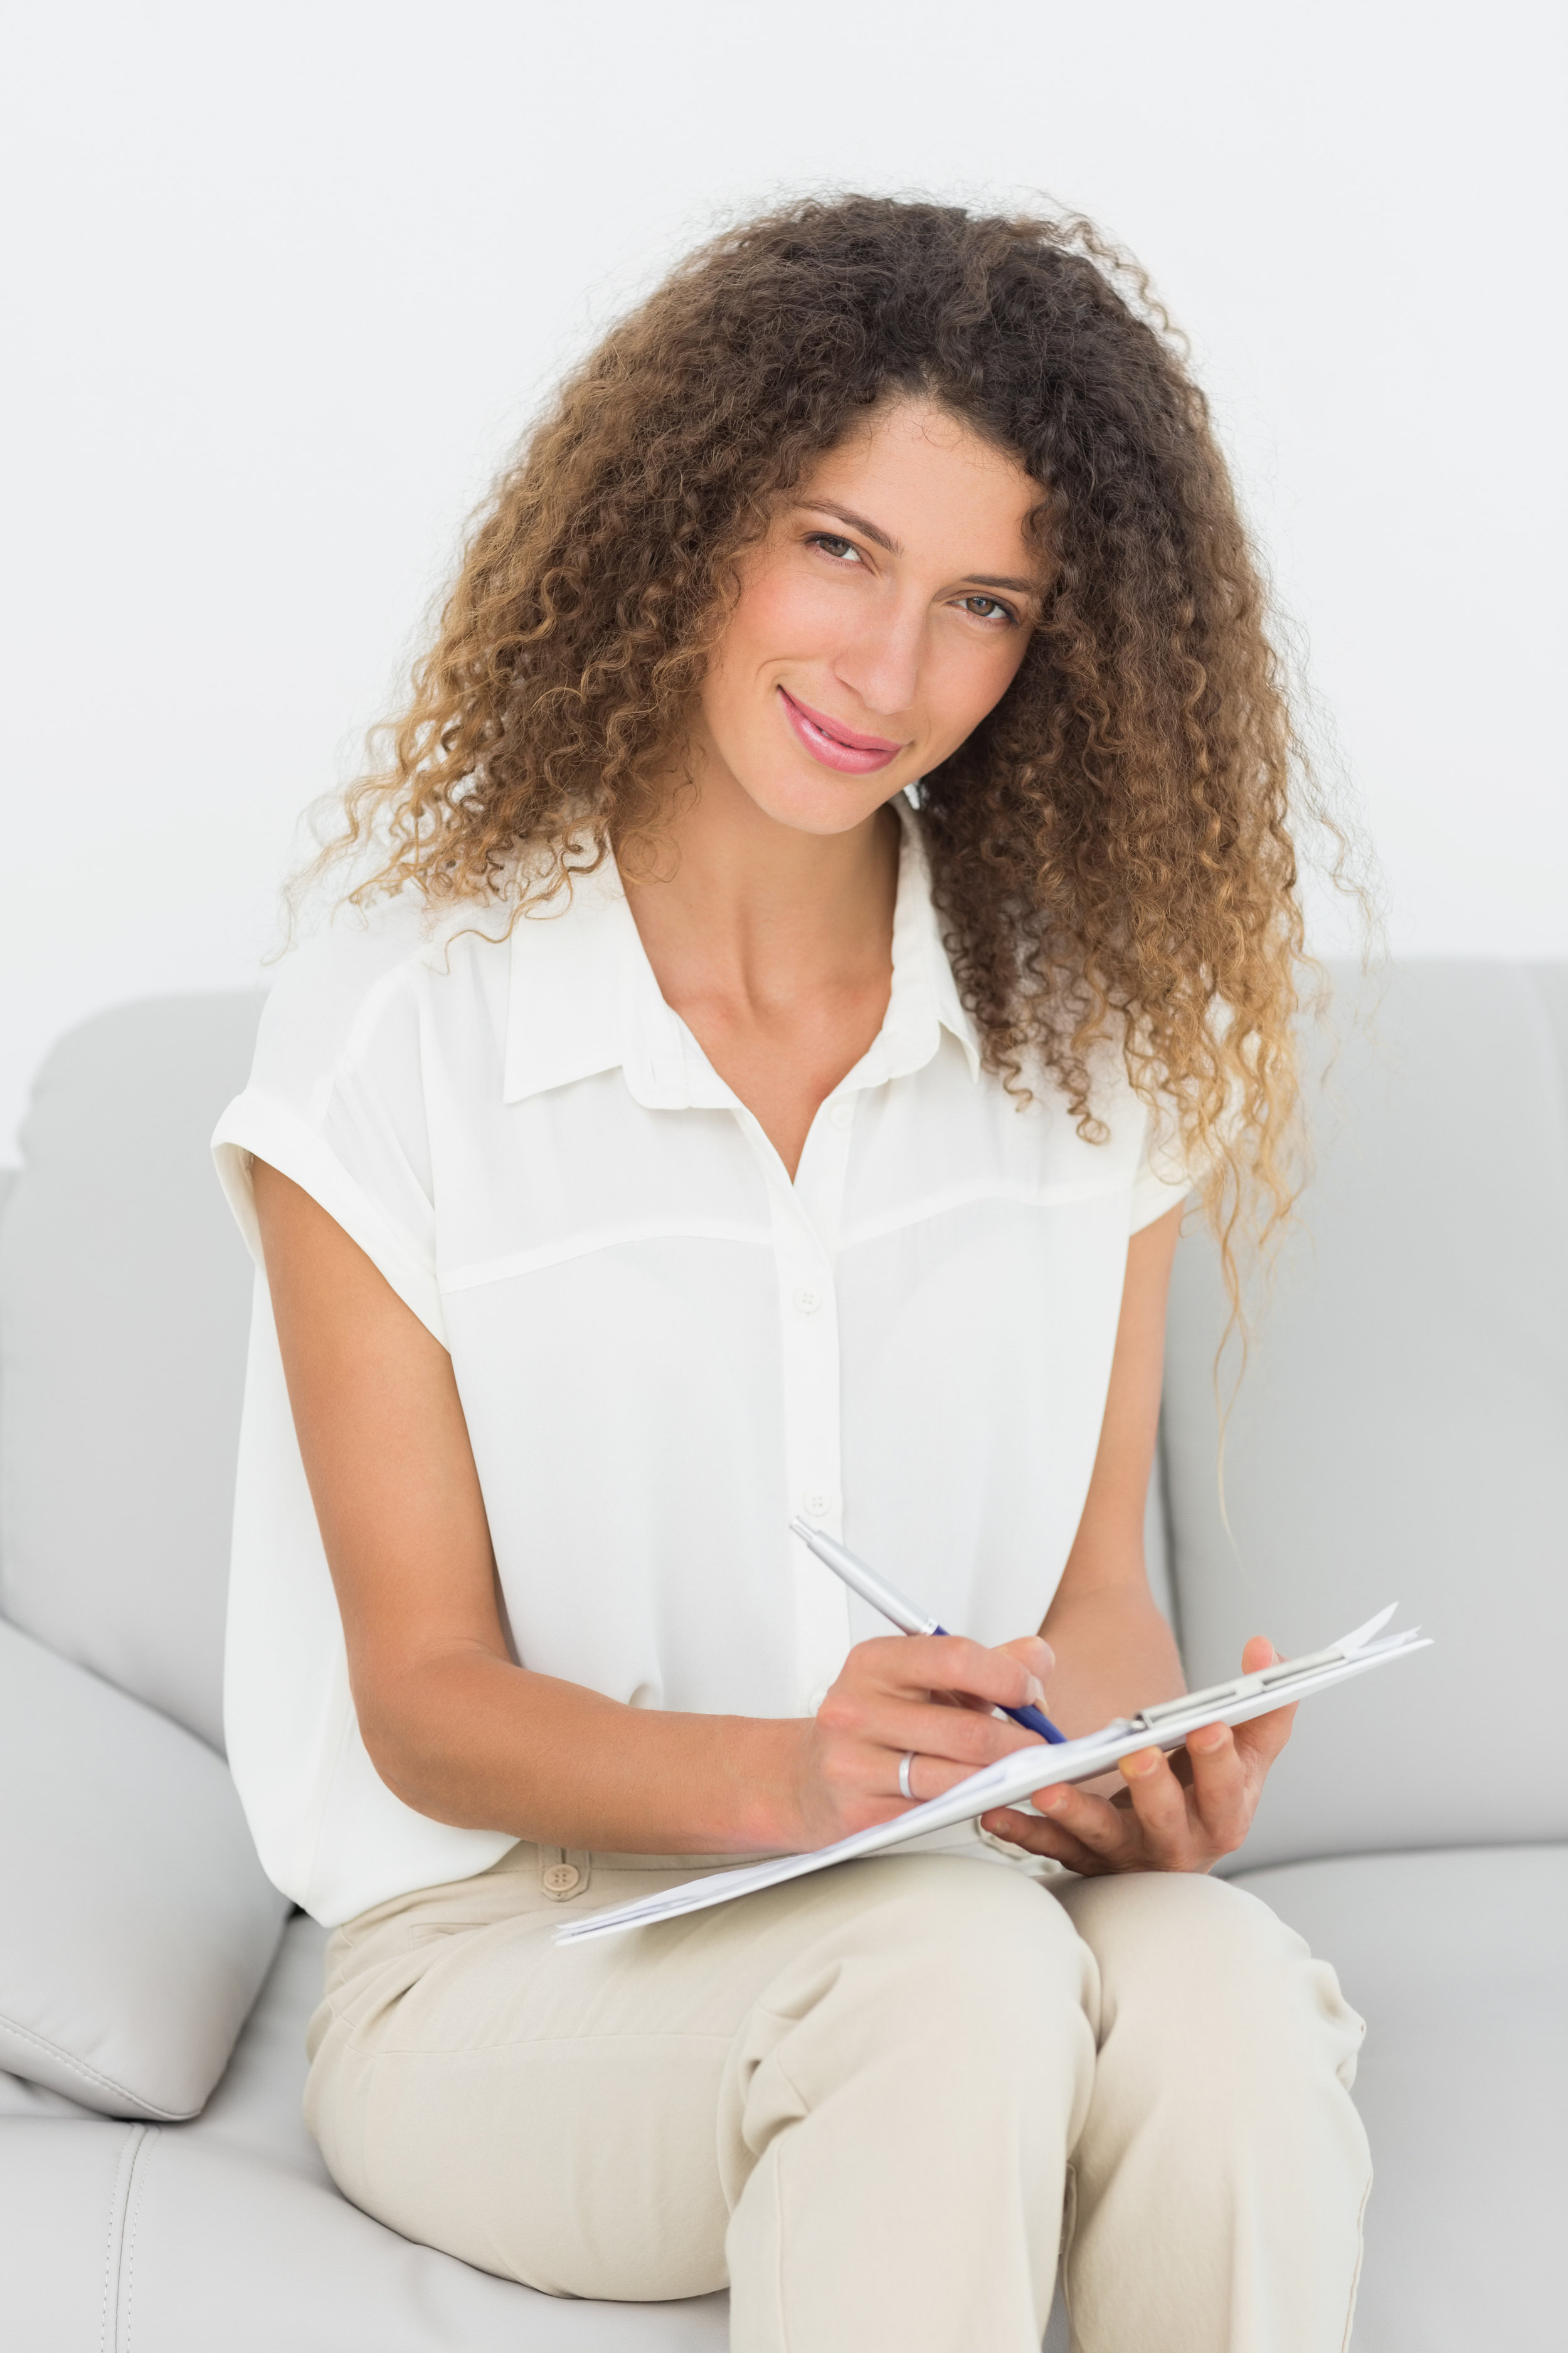 8 Things I Wish I Knew as a Registered Mental Health Counselor Intern | dianemunoz.com